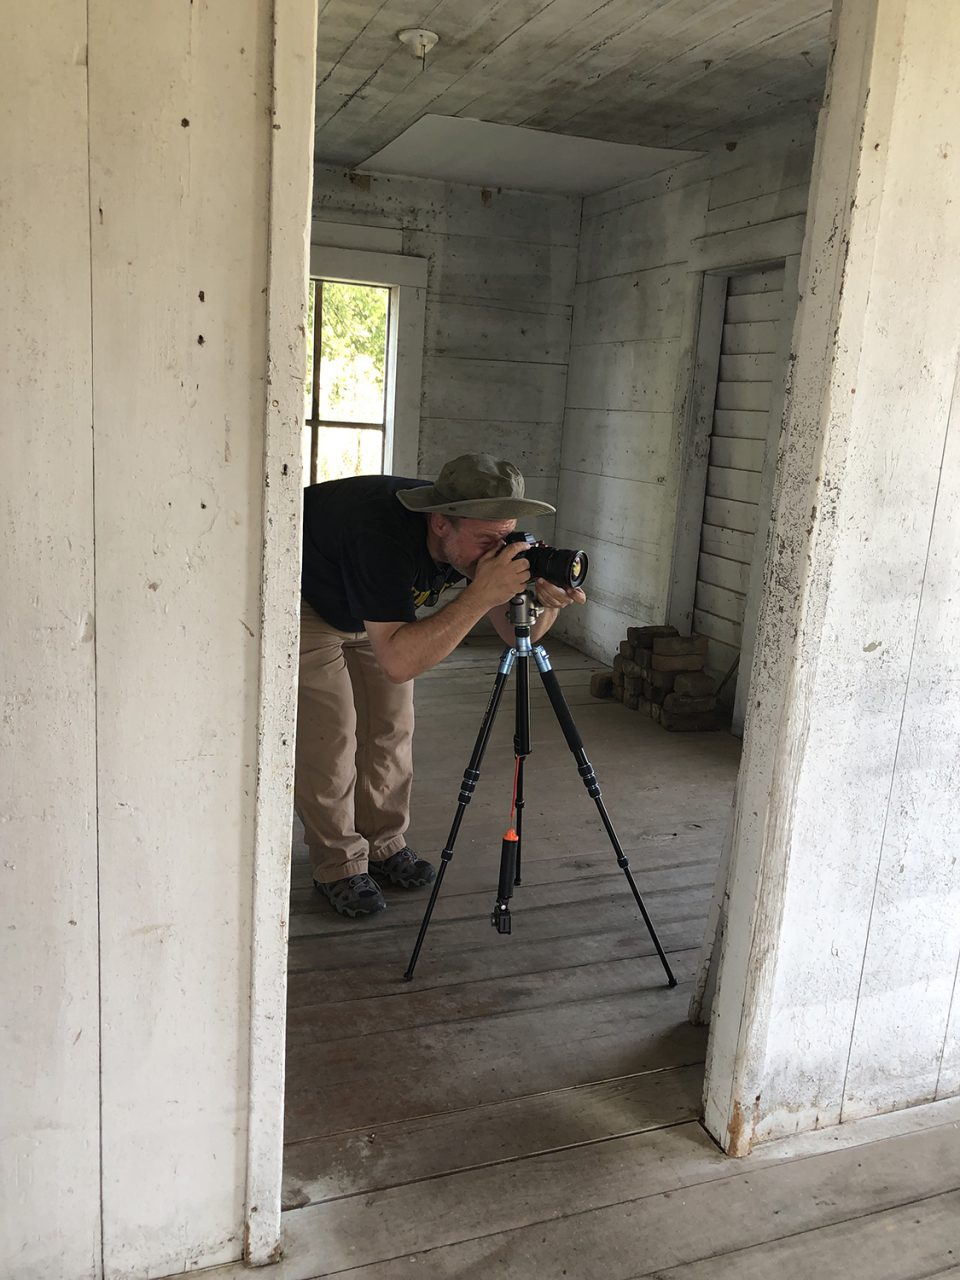 Fine art photographer Keith Dotson caught in action shooting an abandoned farmhouse.